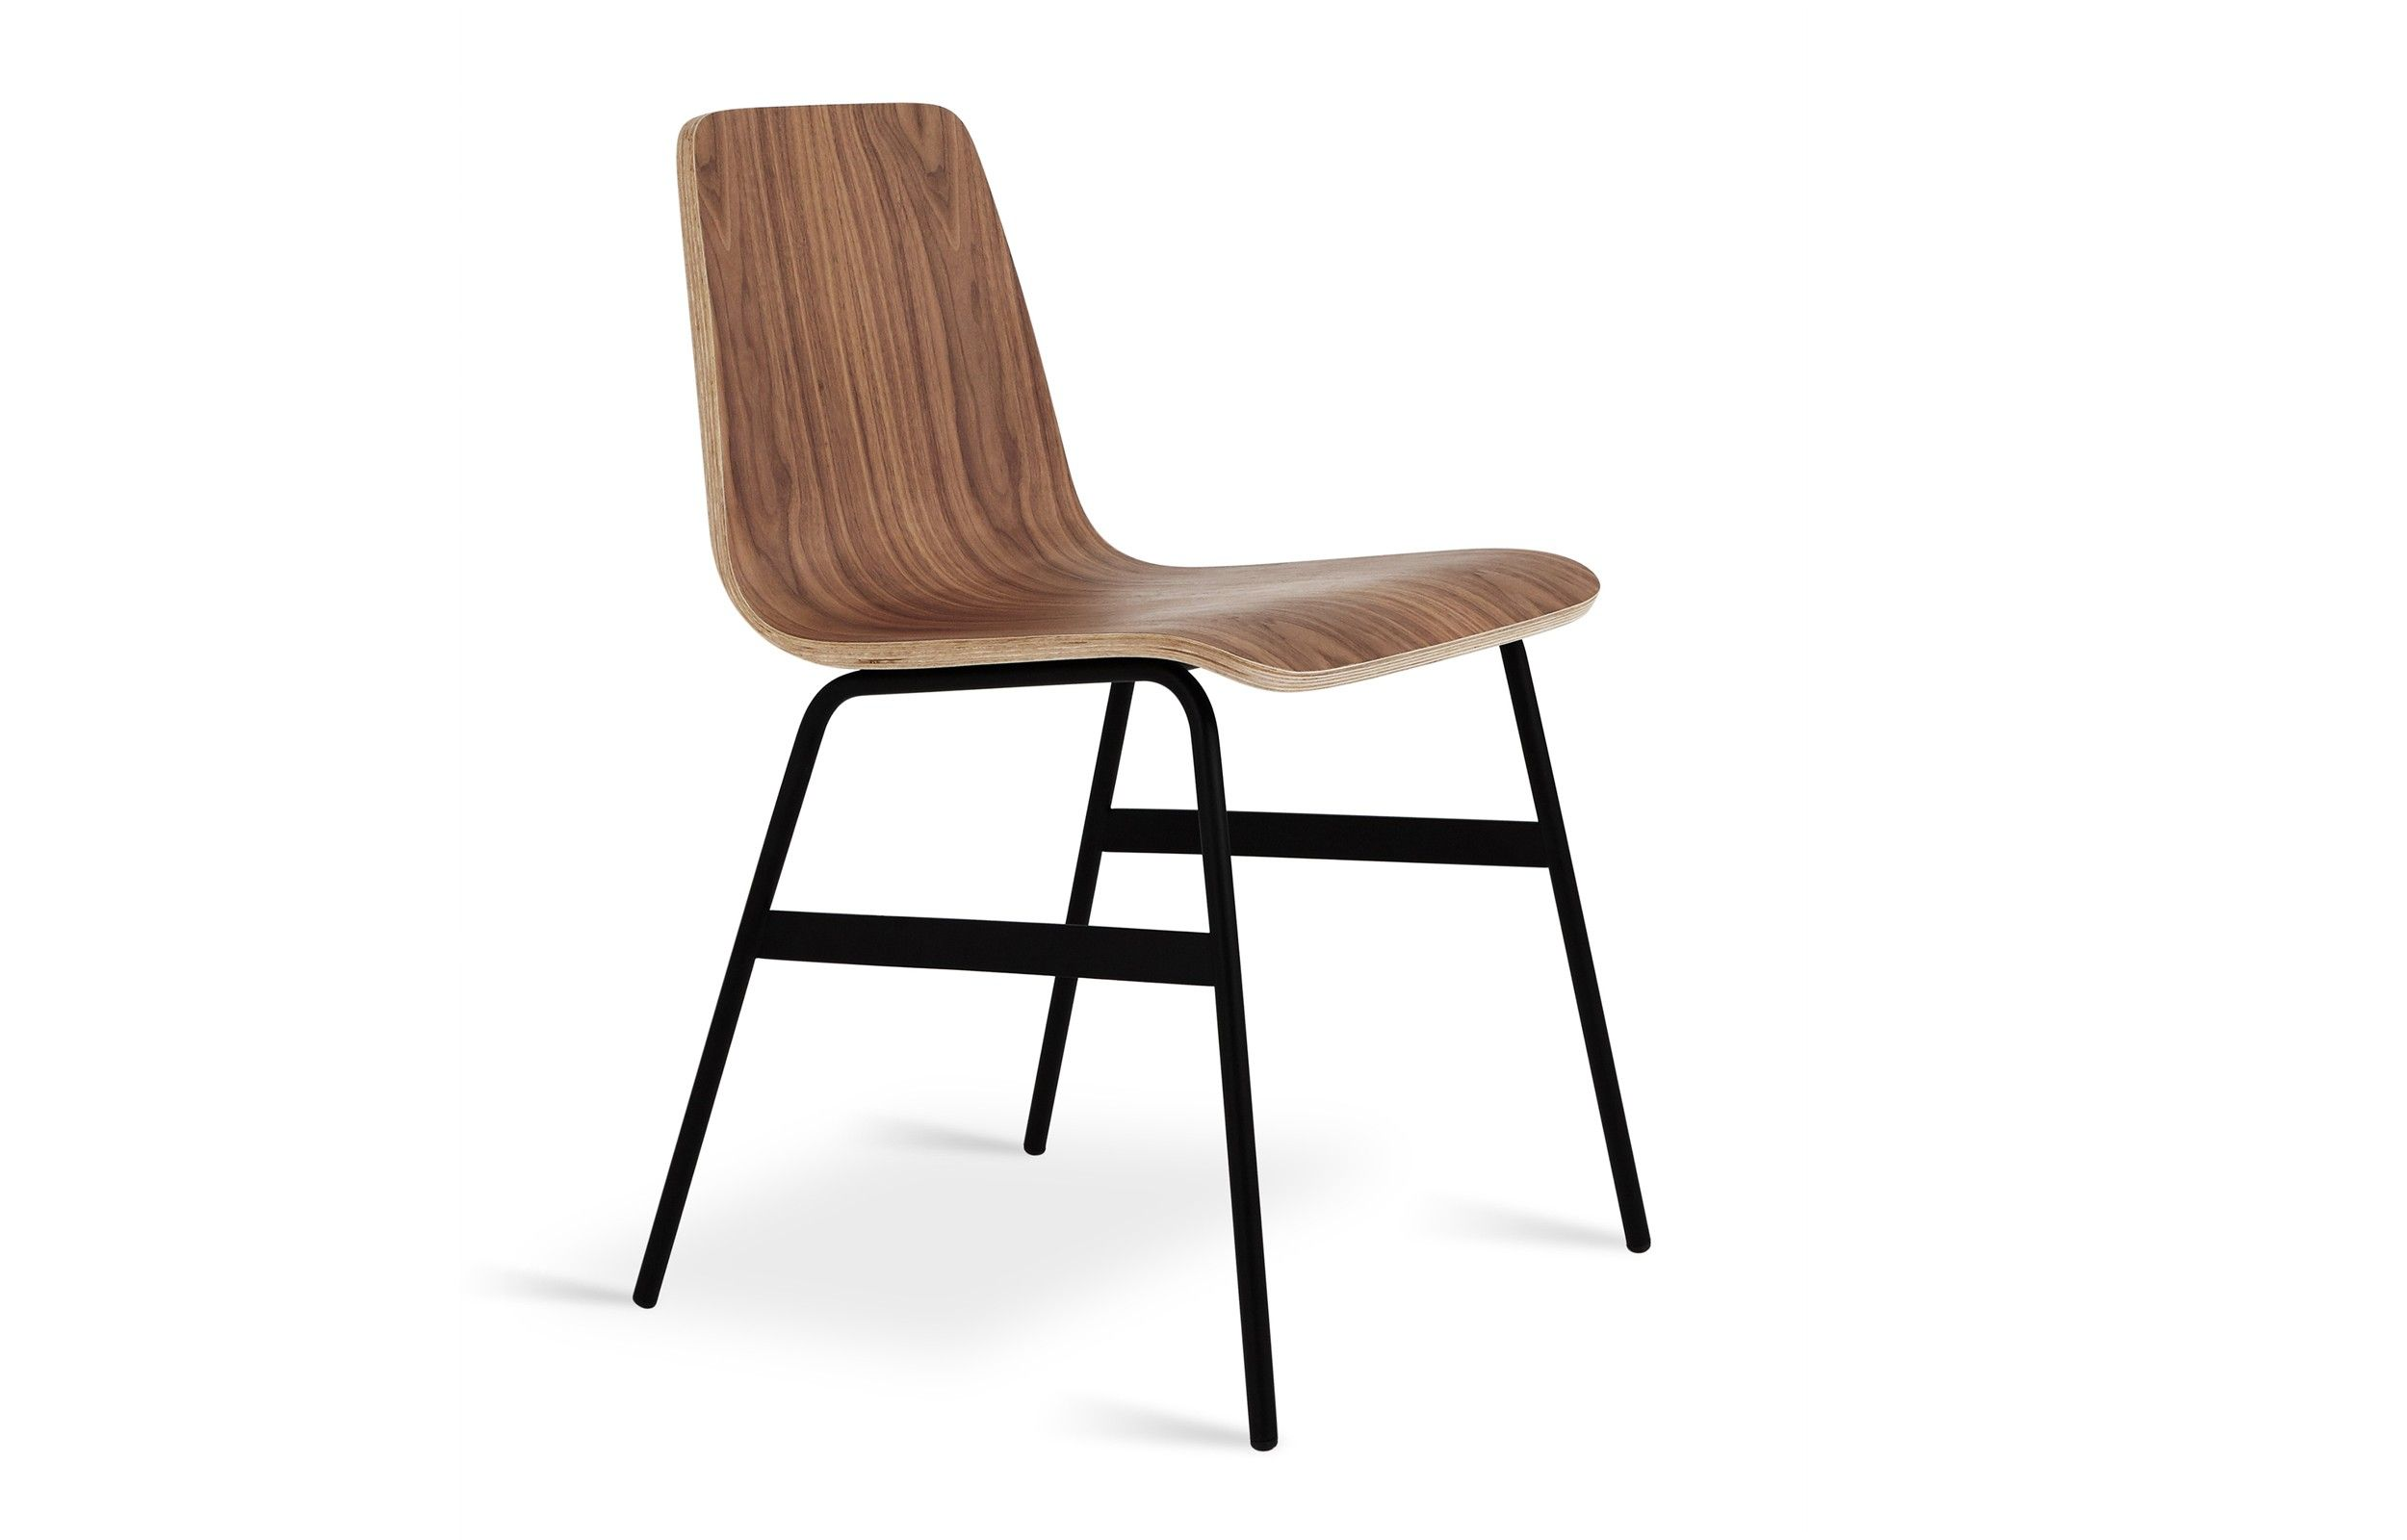 Chair Design With Handle Leather Bean Bag Lecture In 2018 Dining Chairs Pinterest School The Is A Modern Reinterpretation Of Classic Elementary It Features One Piece Bent Plywood Seat And Back